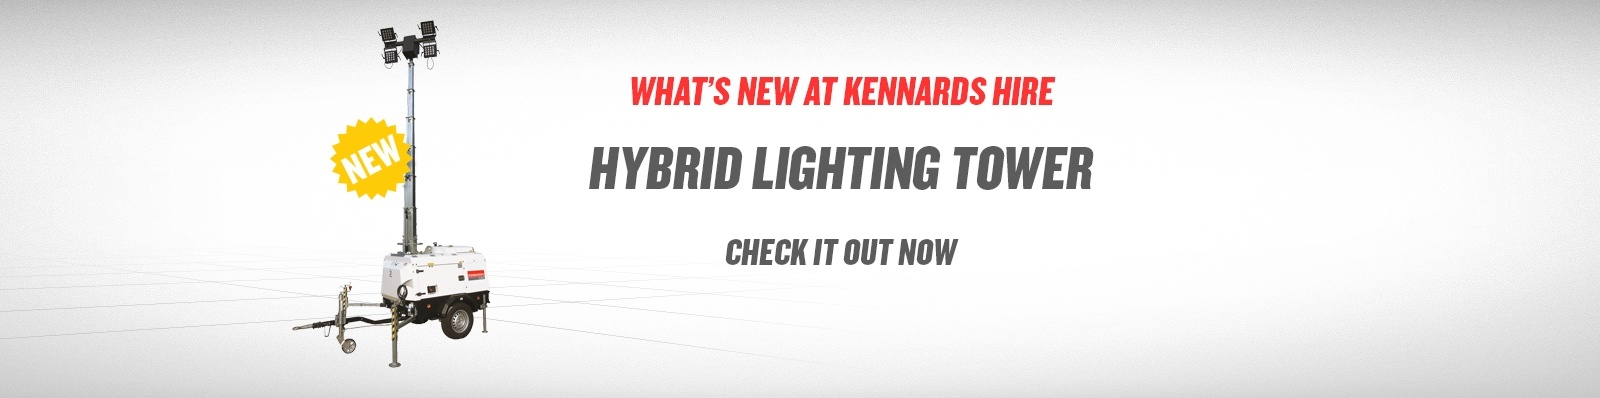 hybrid light tower